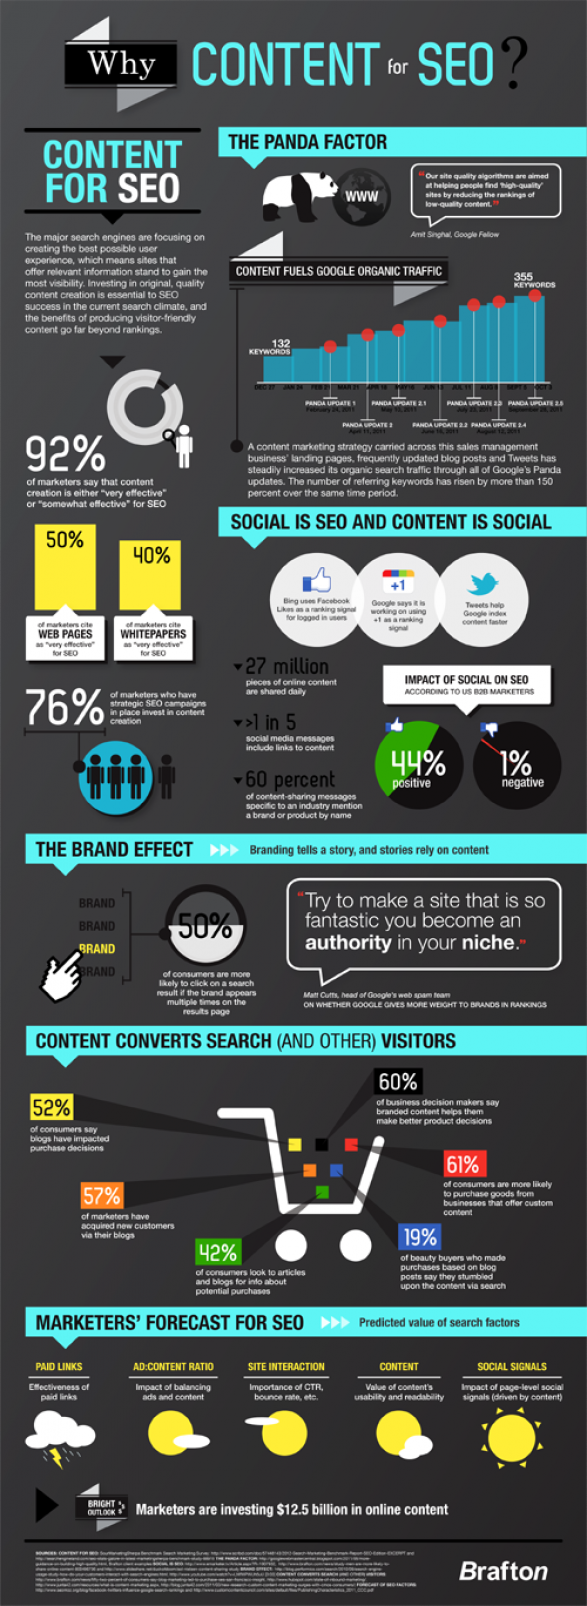 Why is content important for SEO